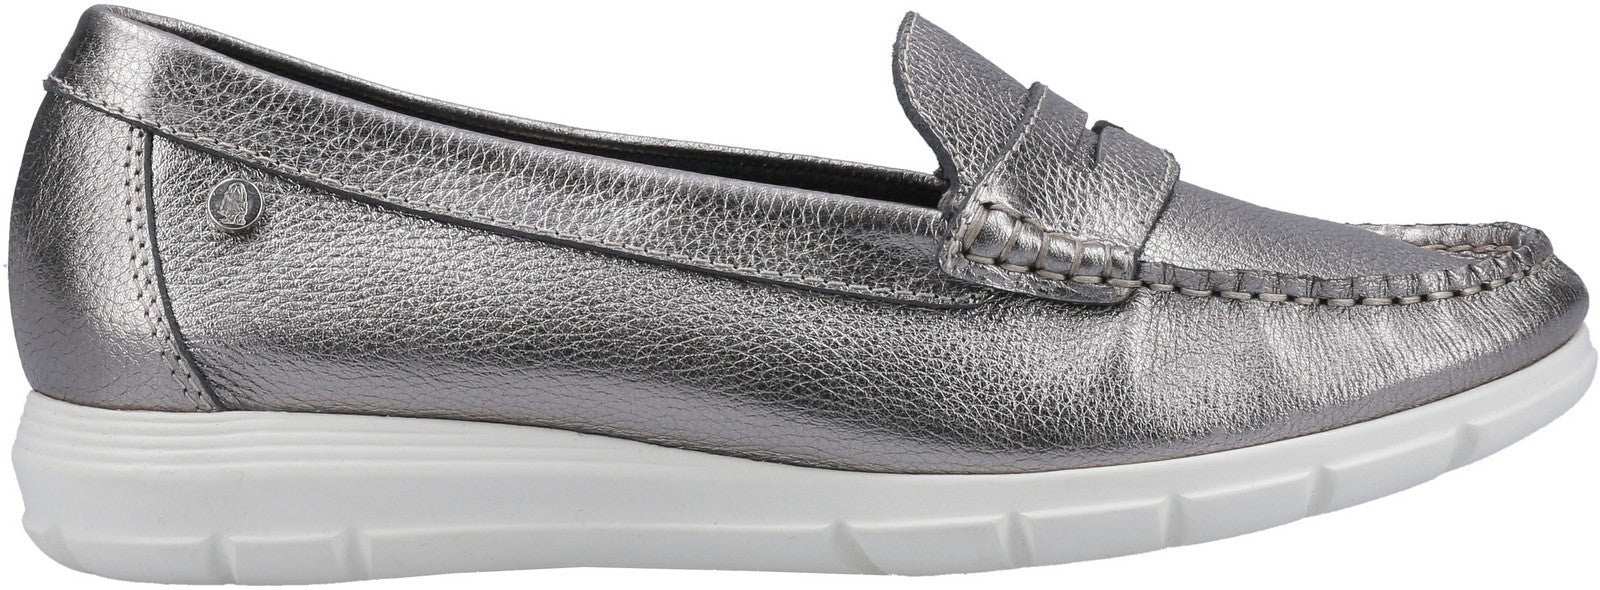 Silver Paige Slip On Shoes